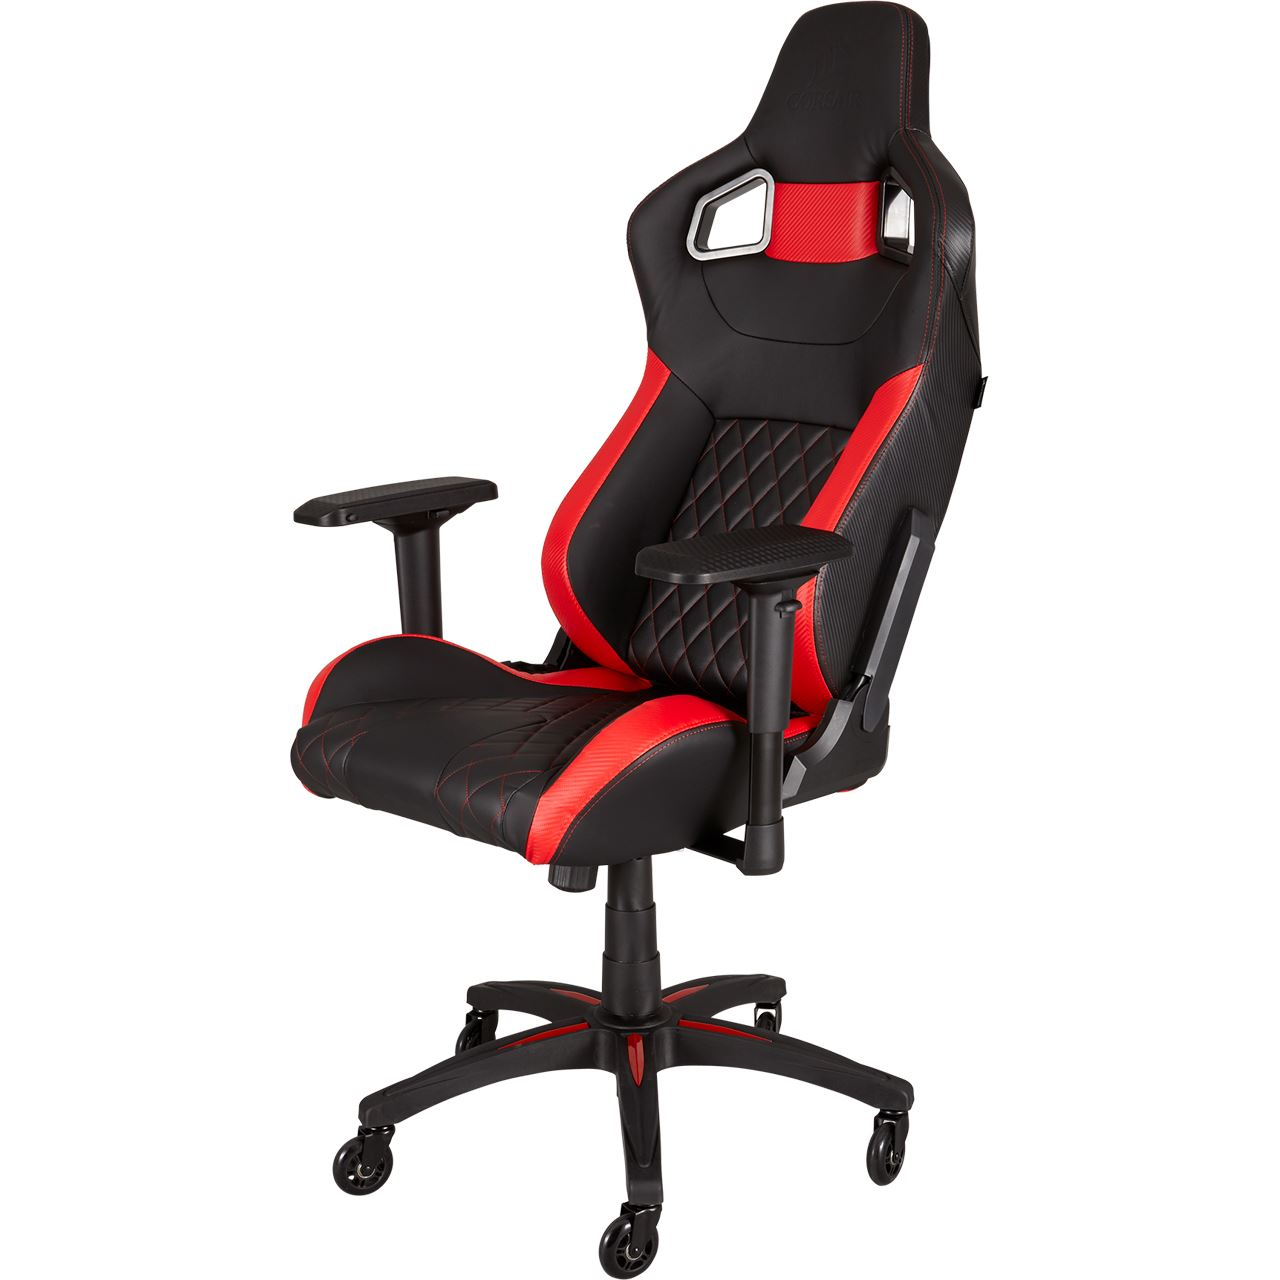 Gaming Sessel Ps4 Gaming Sessel Ps4 Playstation Sessel Ps3 Gaming Chair